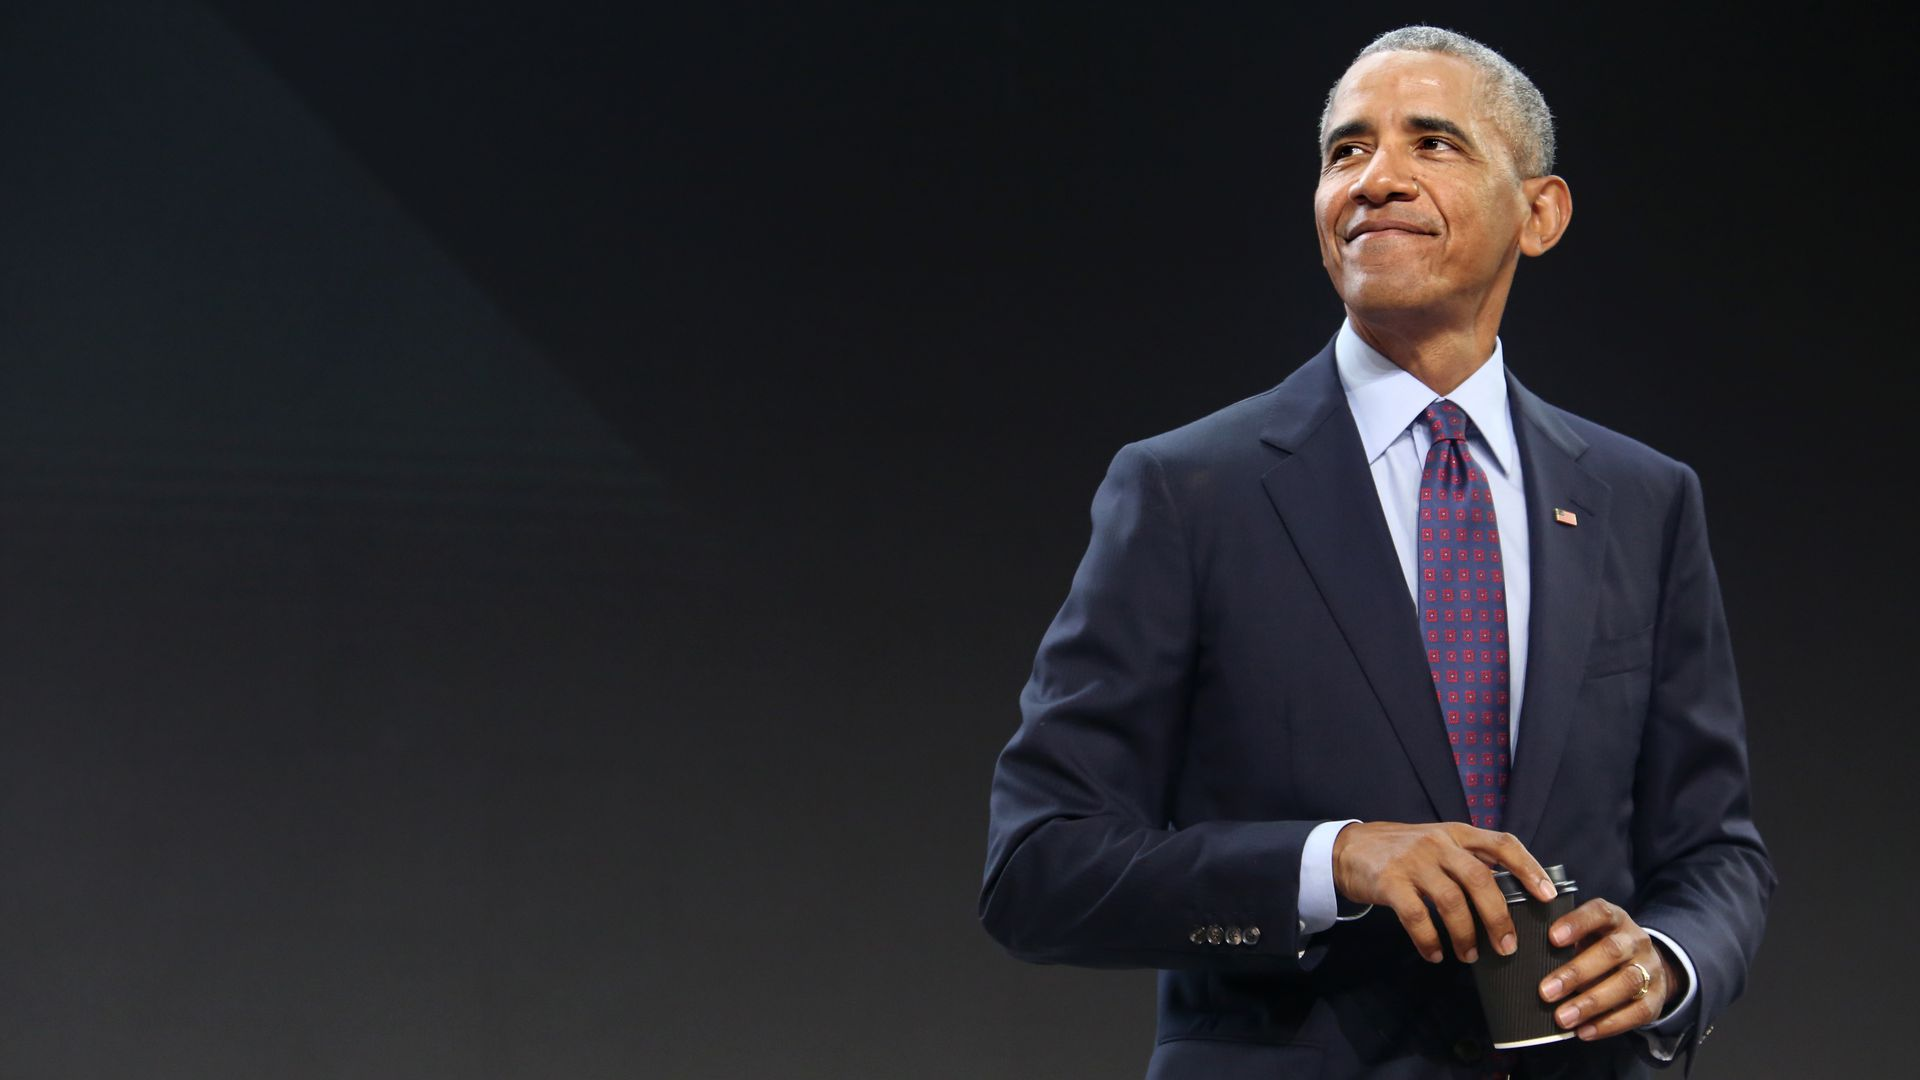 Barack Obama Endorses 81 Candidates For The 2018 Midterm Elections